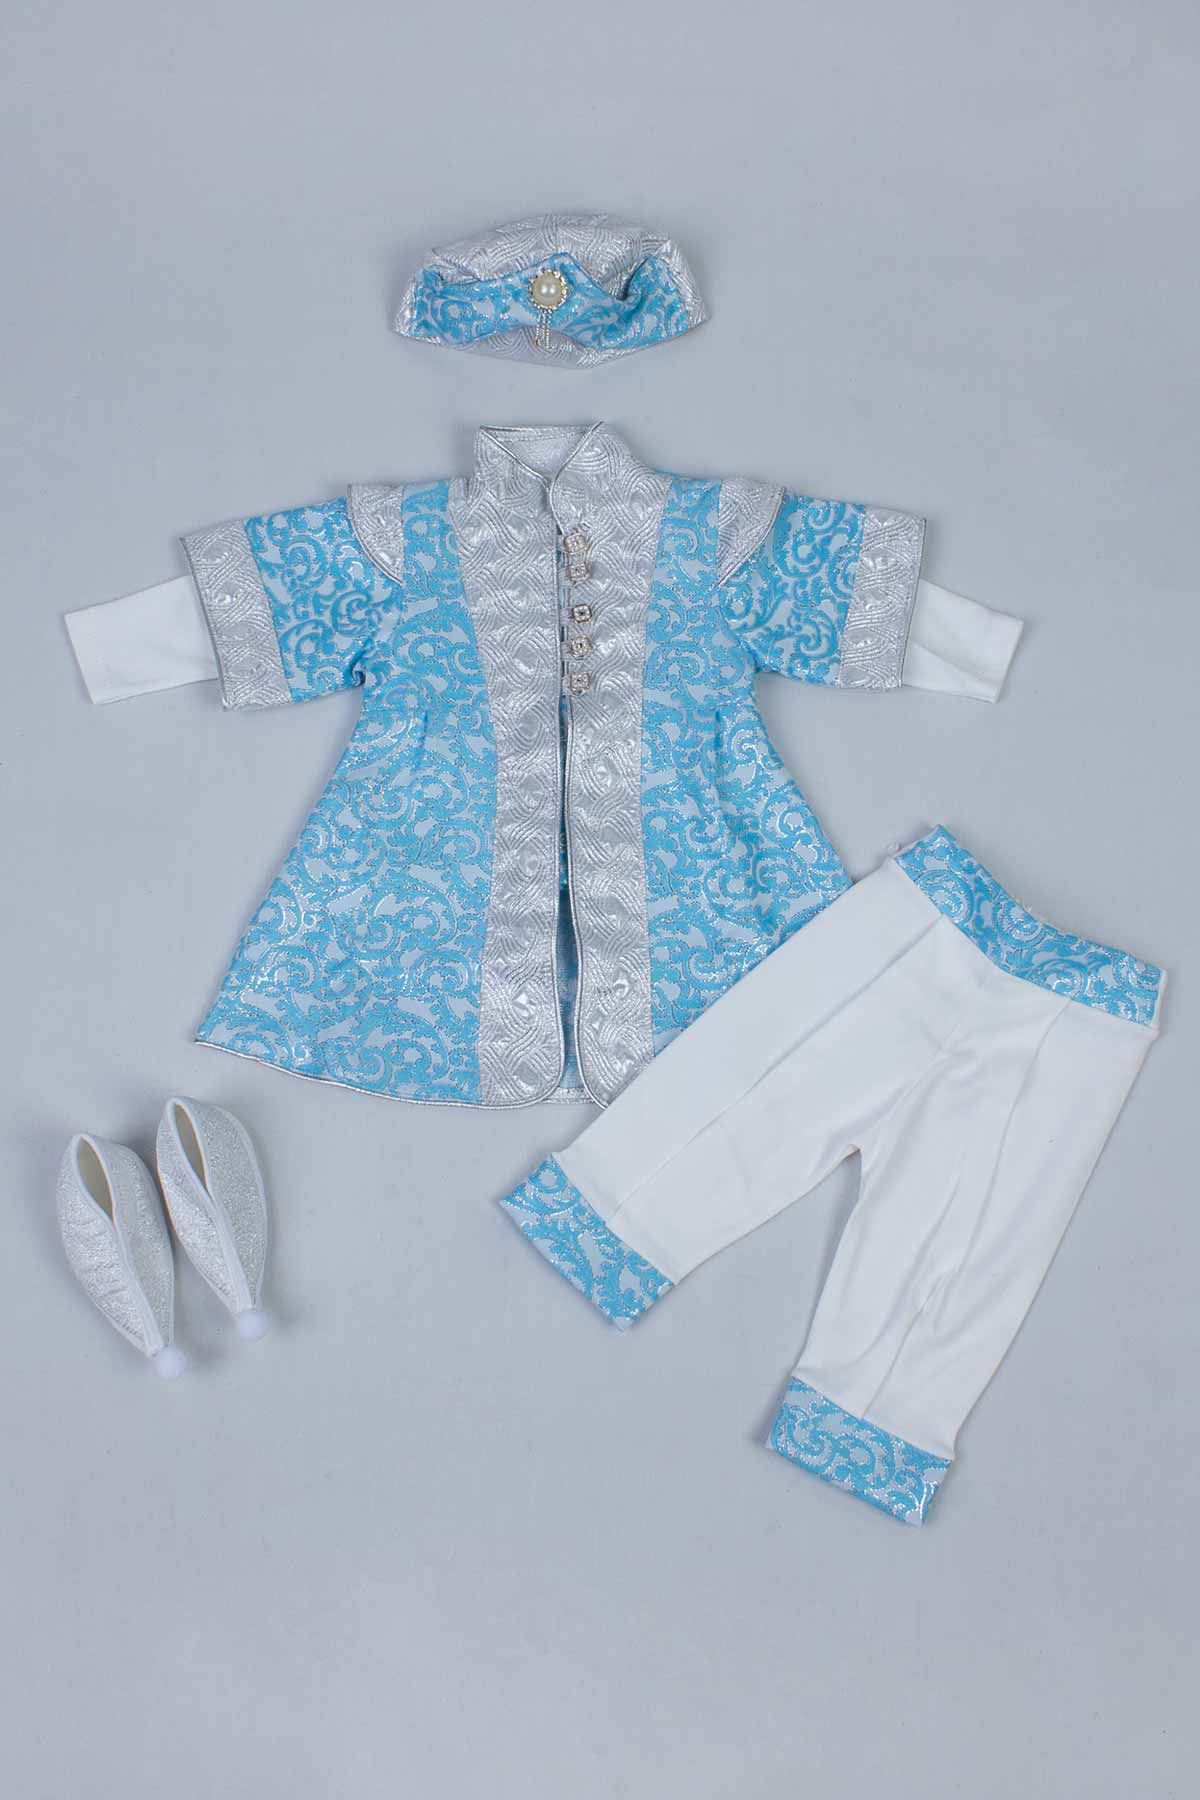 Blue Boy Baby Suit Prince Ottoman Prince Gentleman Formal Dresses Boys Babies 5 Piece Set Male Clothing Special Occasions Outfit Models